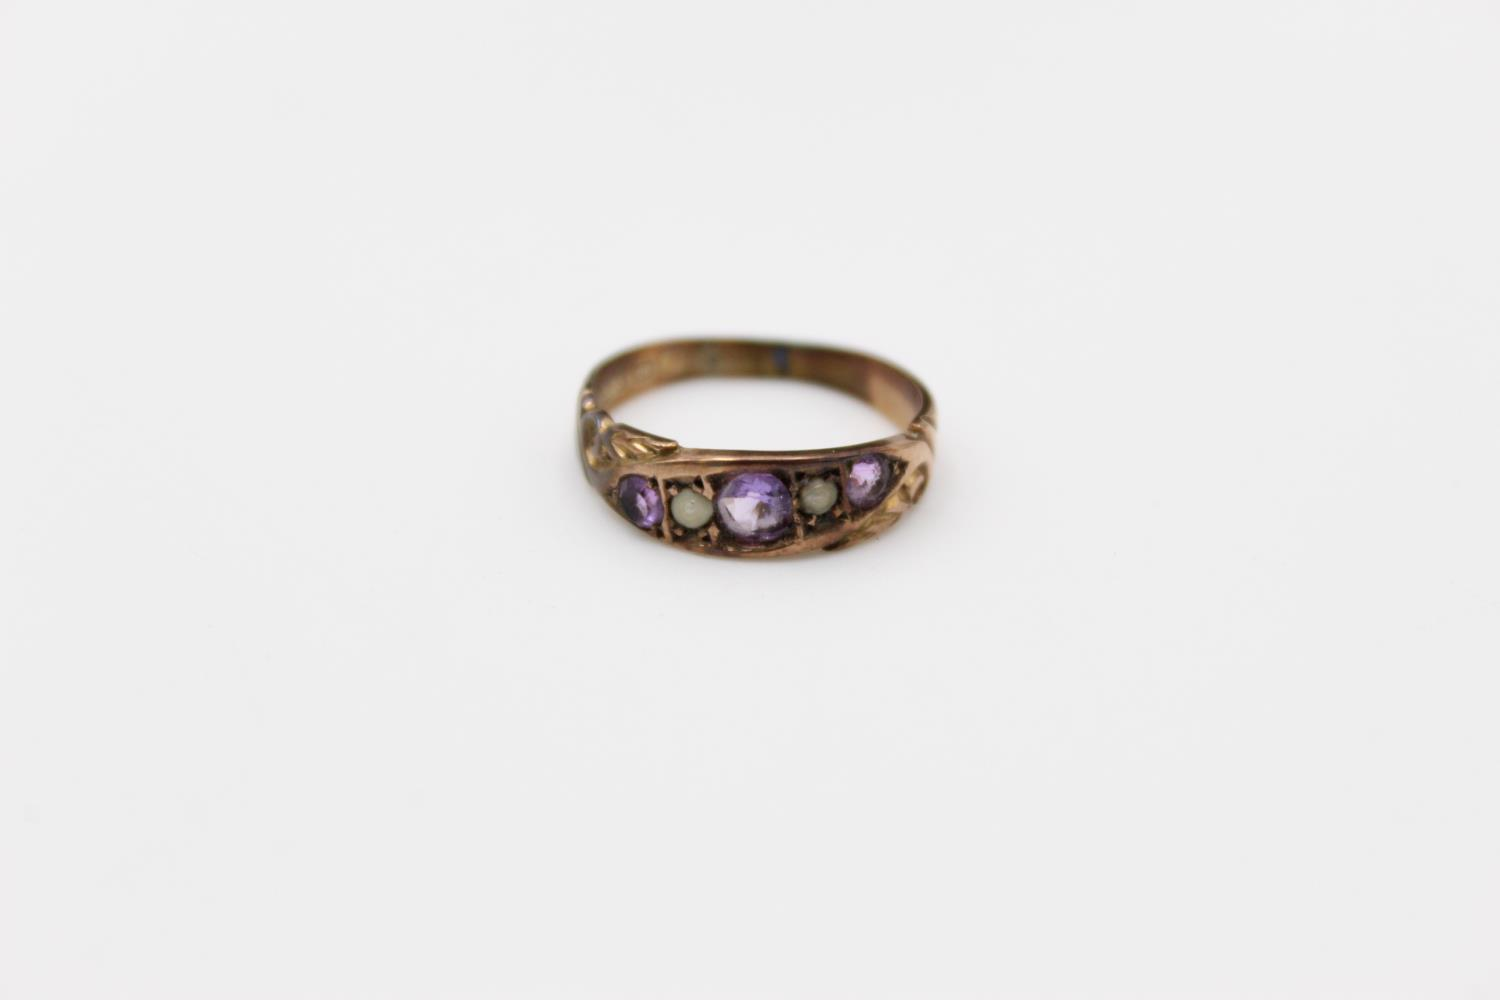 antique 9ct gold amethyst & seed pearl ring 2.2g Size M